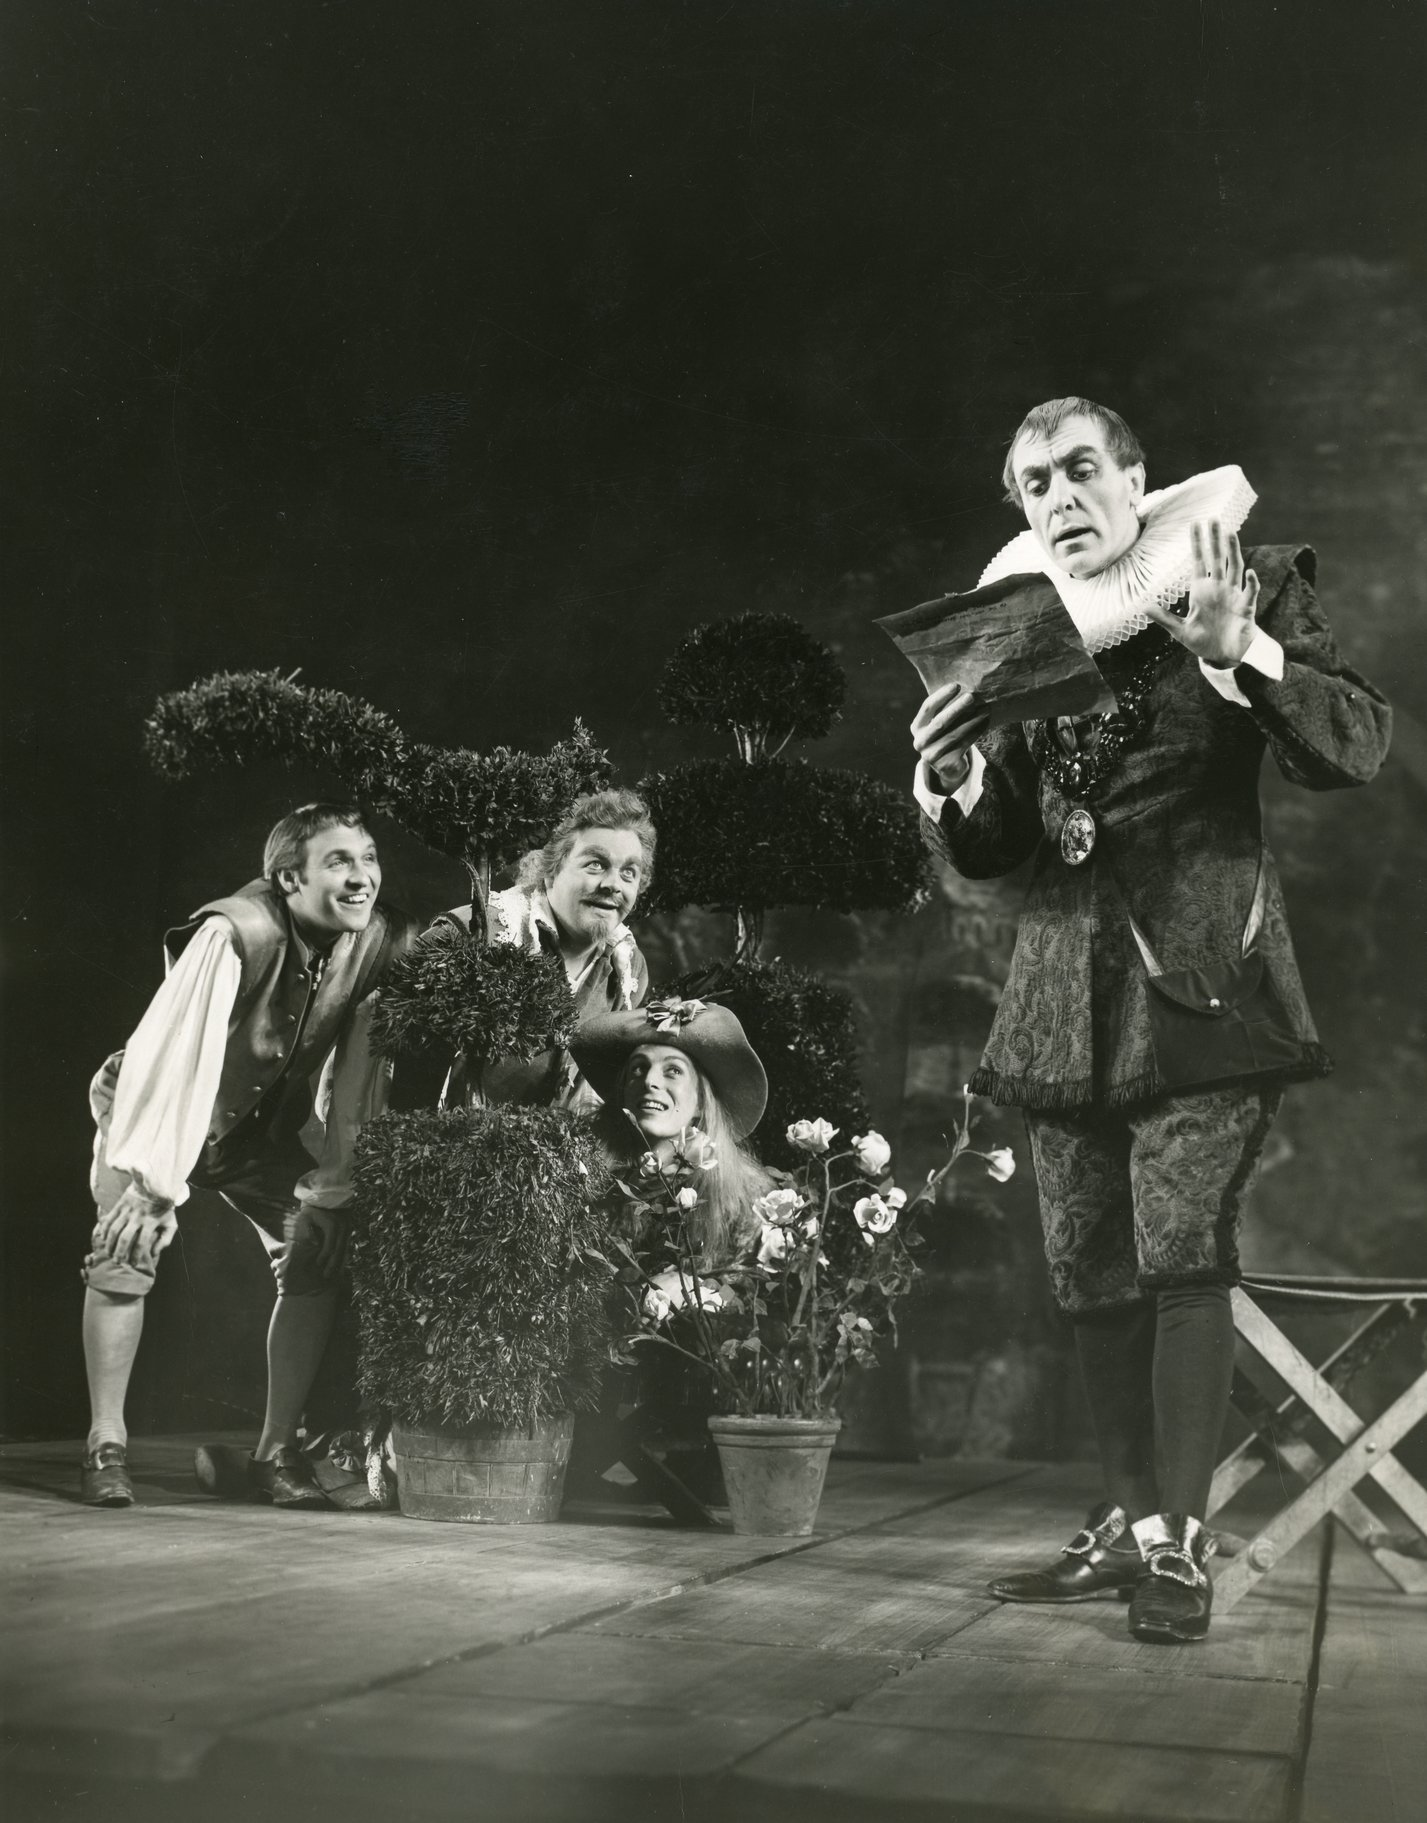 Malvolio reads a letter while dressed in a dark doublet and white ruff. He is watched by Sir Toby, Sir Andrew and Fabian who hide behind small plat pots in the 1960 production of Twelfth Night.